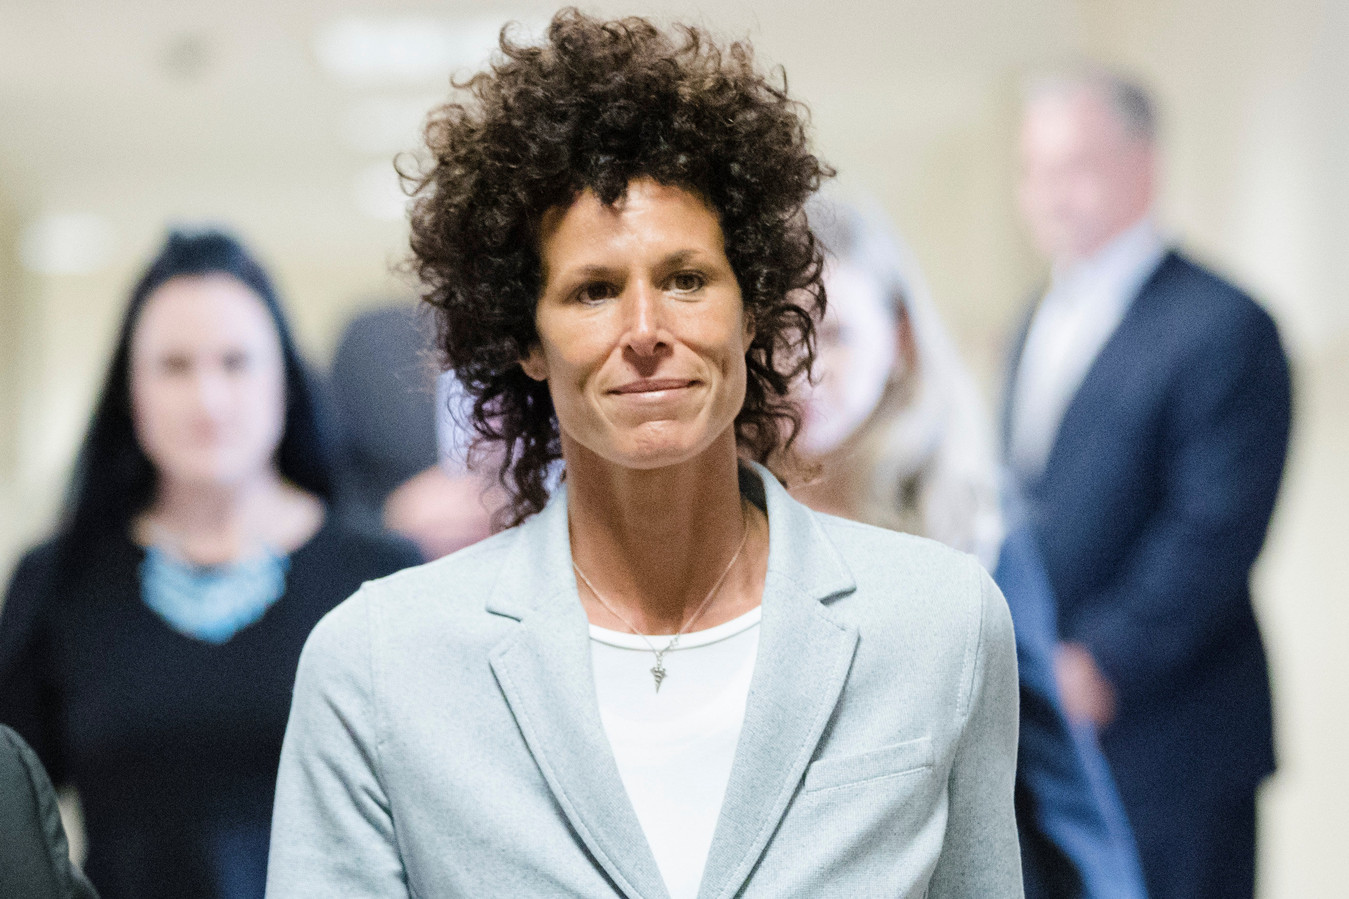 Andrea Constand whose allegations led to Bill Cosbys conviction has declined every interview request Now she talks at length with Kate Snow for